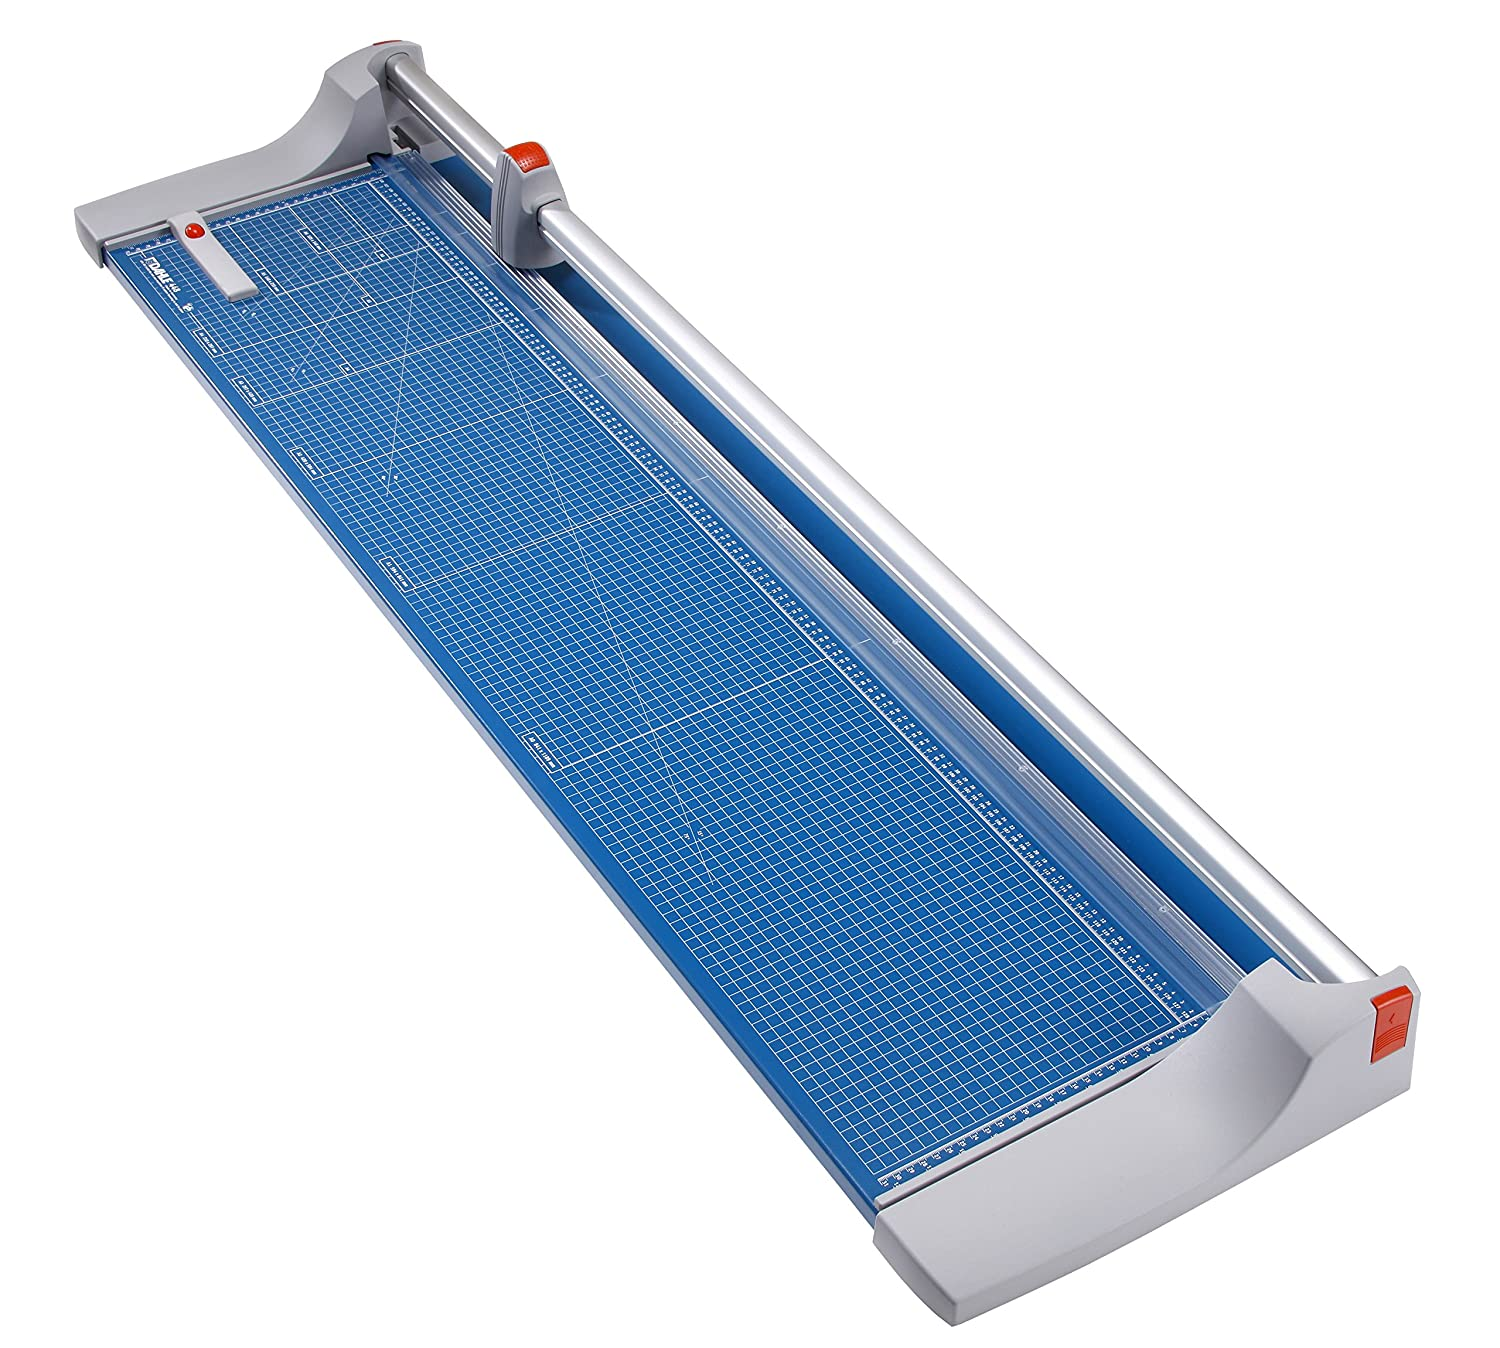 Dahle 440 Premium Rolling Trimmer, 14-1/8 Cut Length, 30 Sheet Capacity, Self-Sharpening, Automatic Clamp, German Engineered Paper Cutter 14-1/8 Cut Length 00440-21310 4007885004402